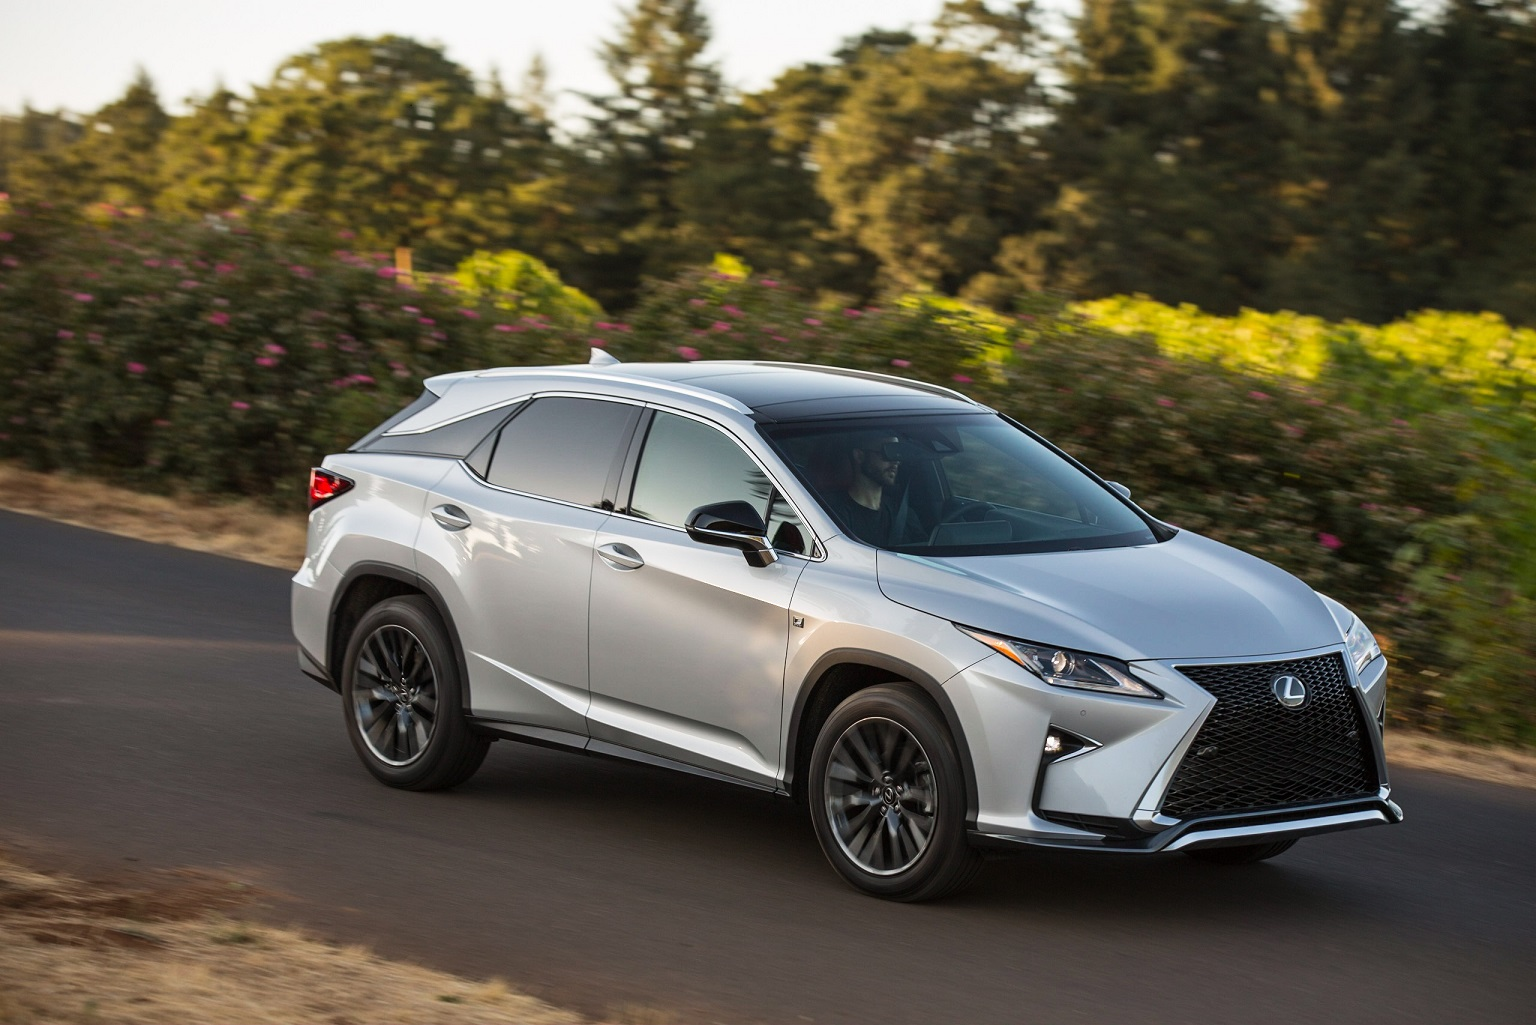 Lexus News Events About Canada 1989 In Car Wiring Schematics Third Generation Fbody Message Toronto Ontario December 18 2017 Experience The Bold Elegance Of A Progressive And Luxurious Rx Mid Size Suv For 2018 Offers Choice